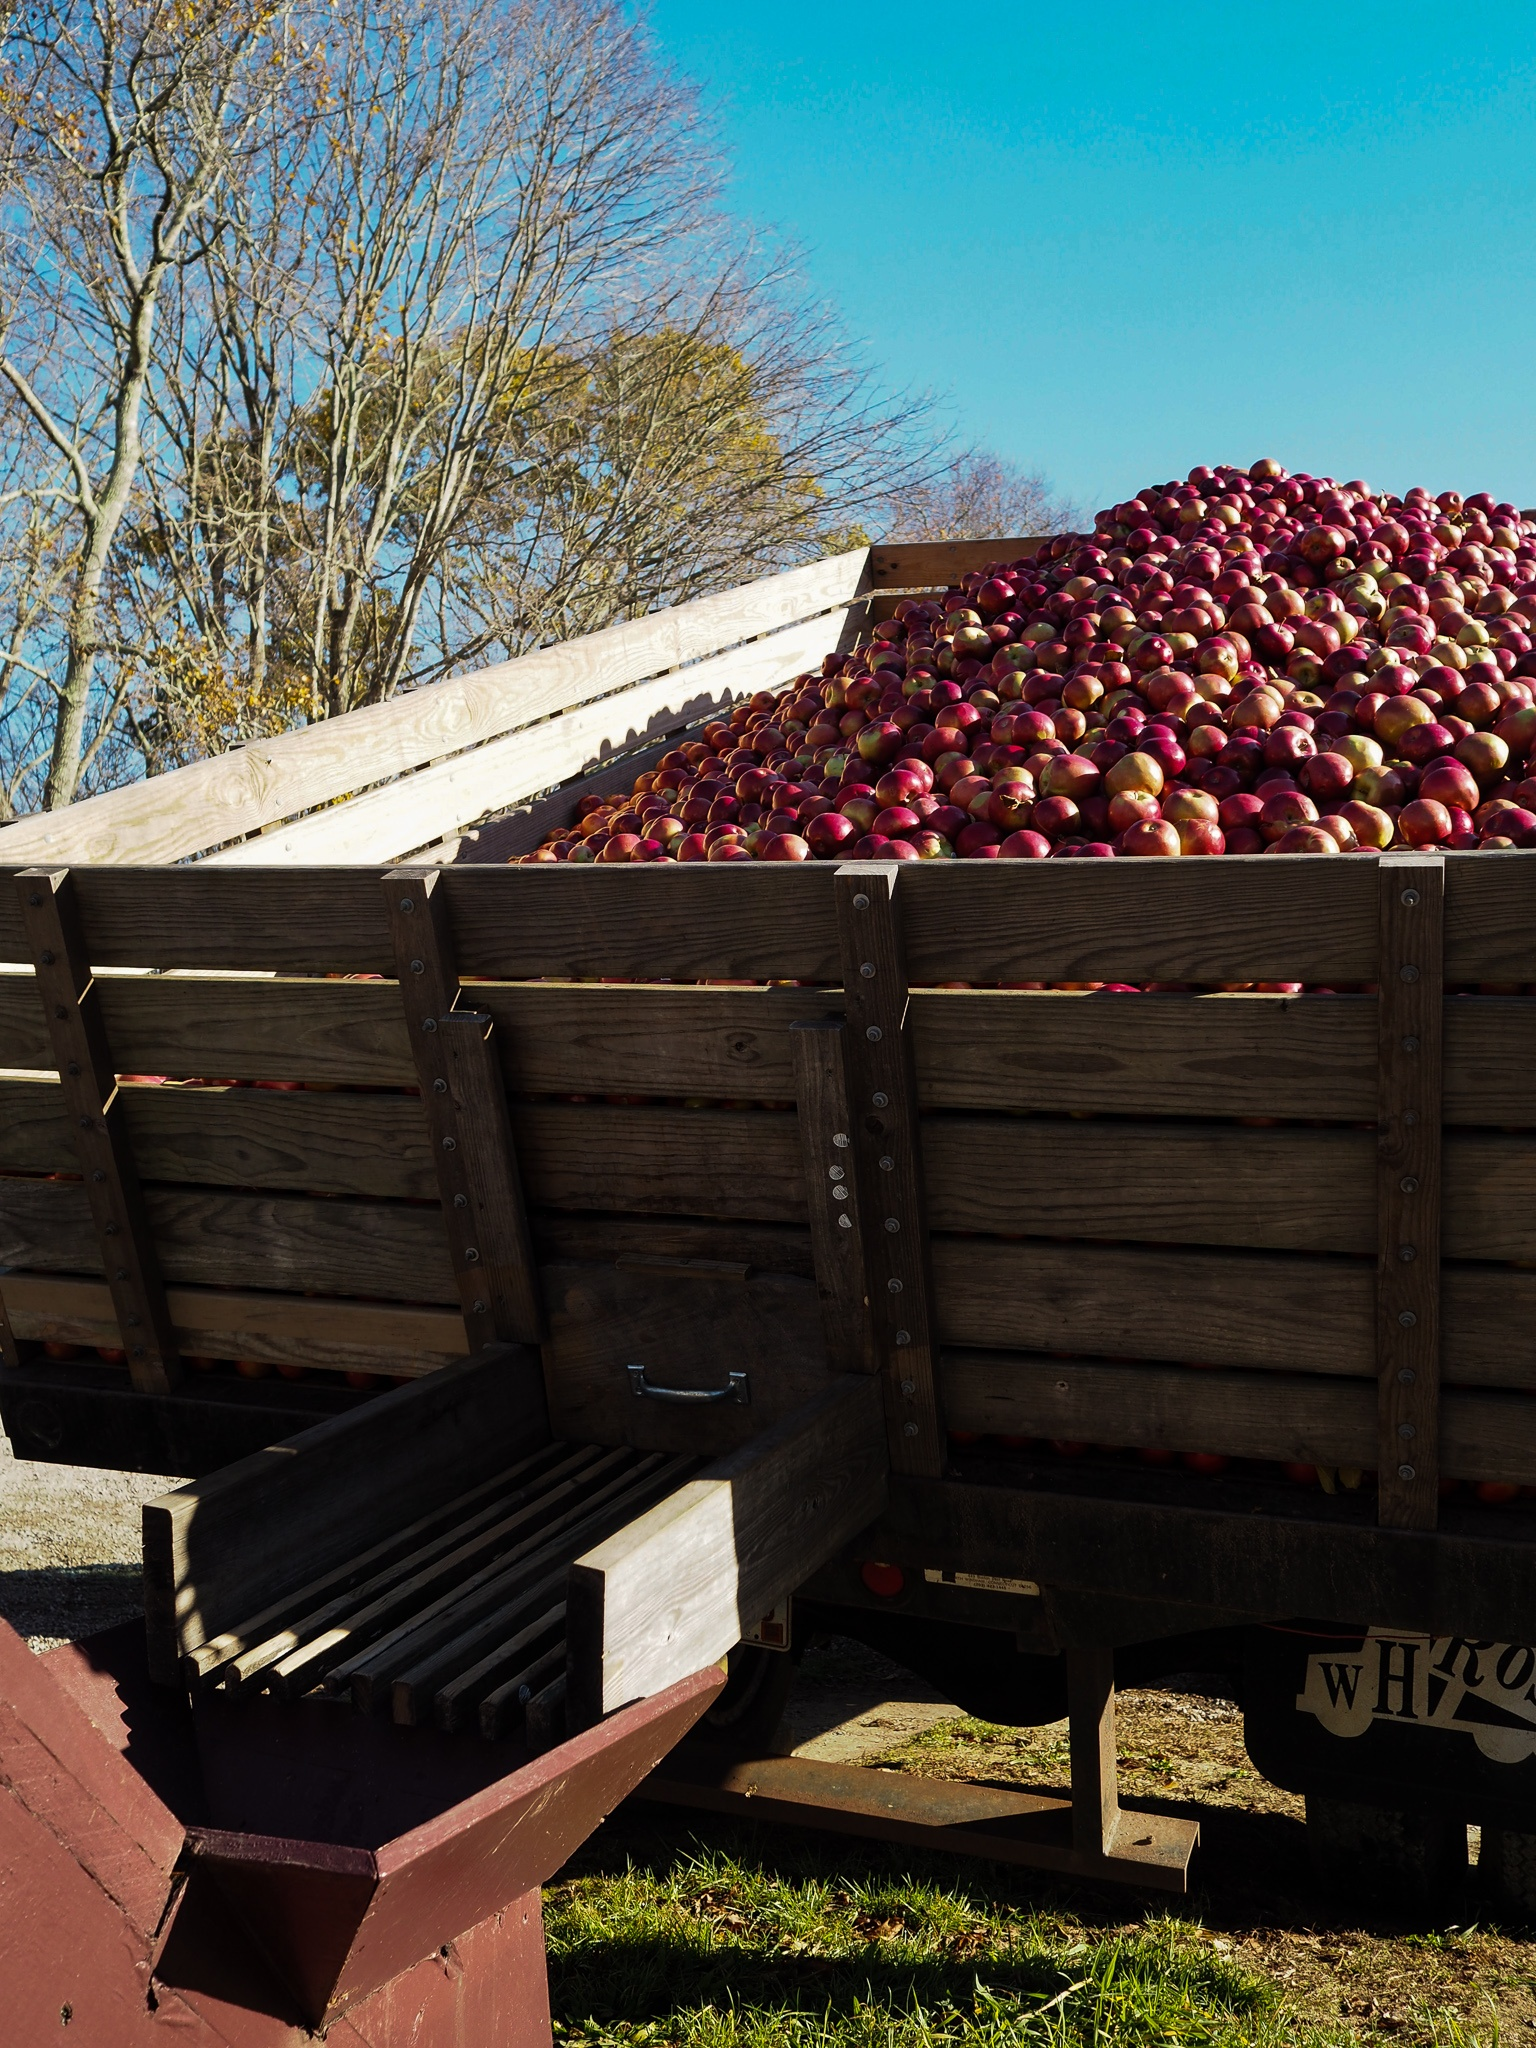 B. F. Clydes Cider Mill. A place to stop in and grab delicious apple cider, apple cider donuts, and apple wine, and hard cider. A must stop place in New England for the fall season.